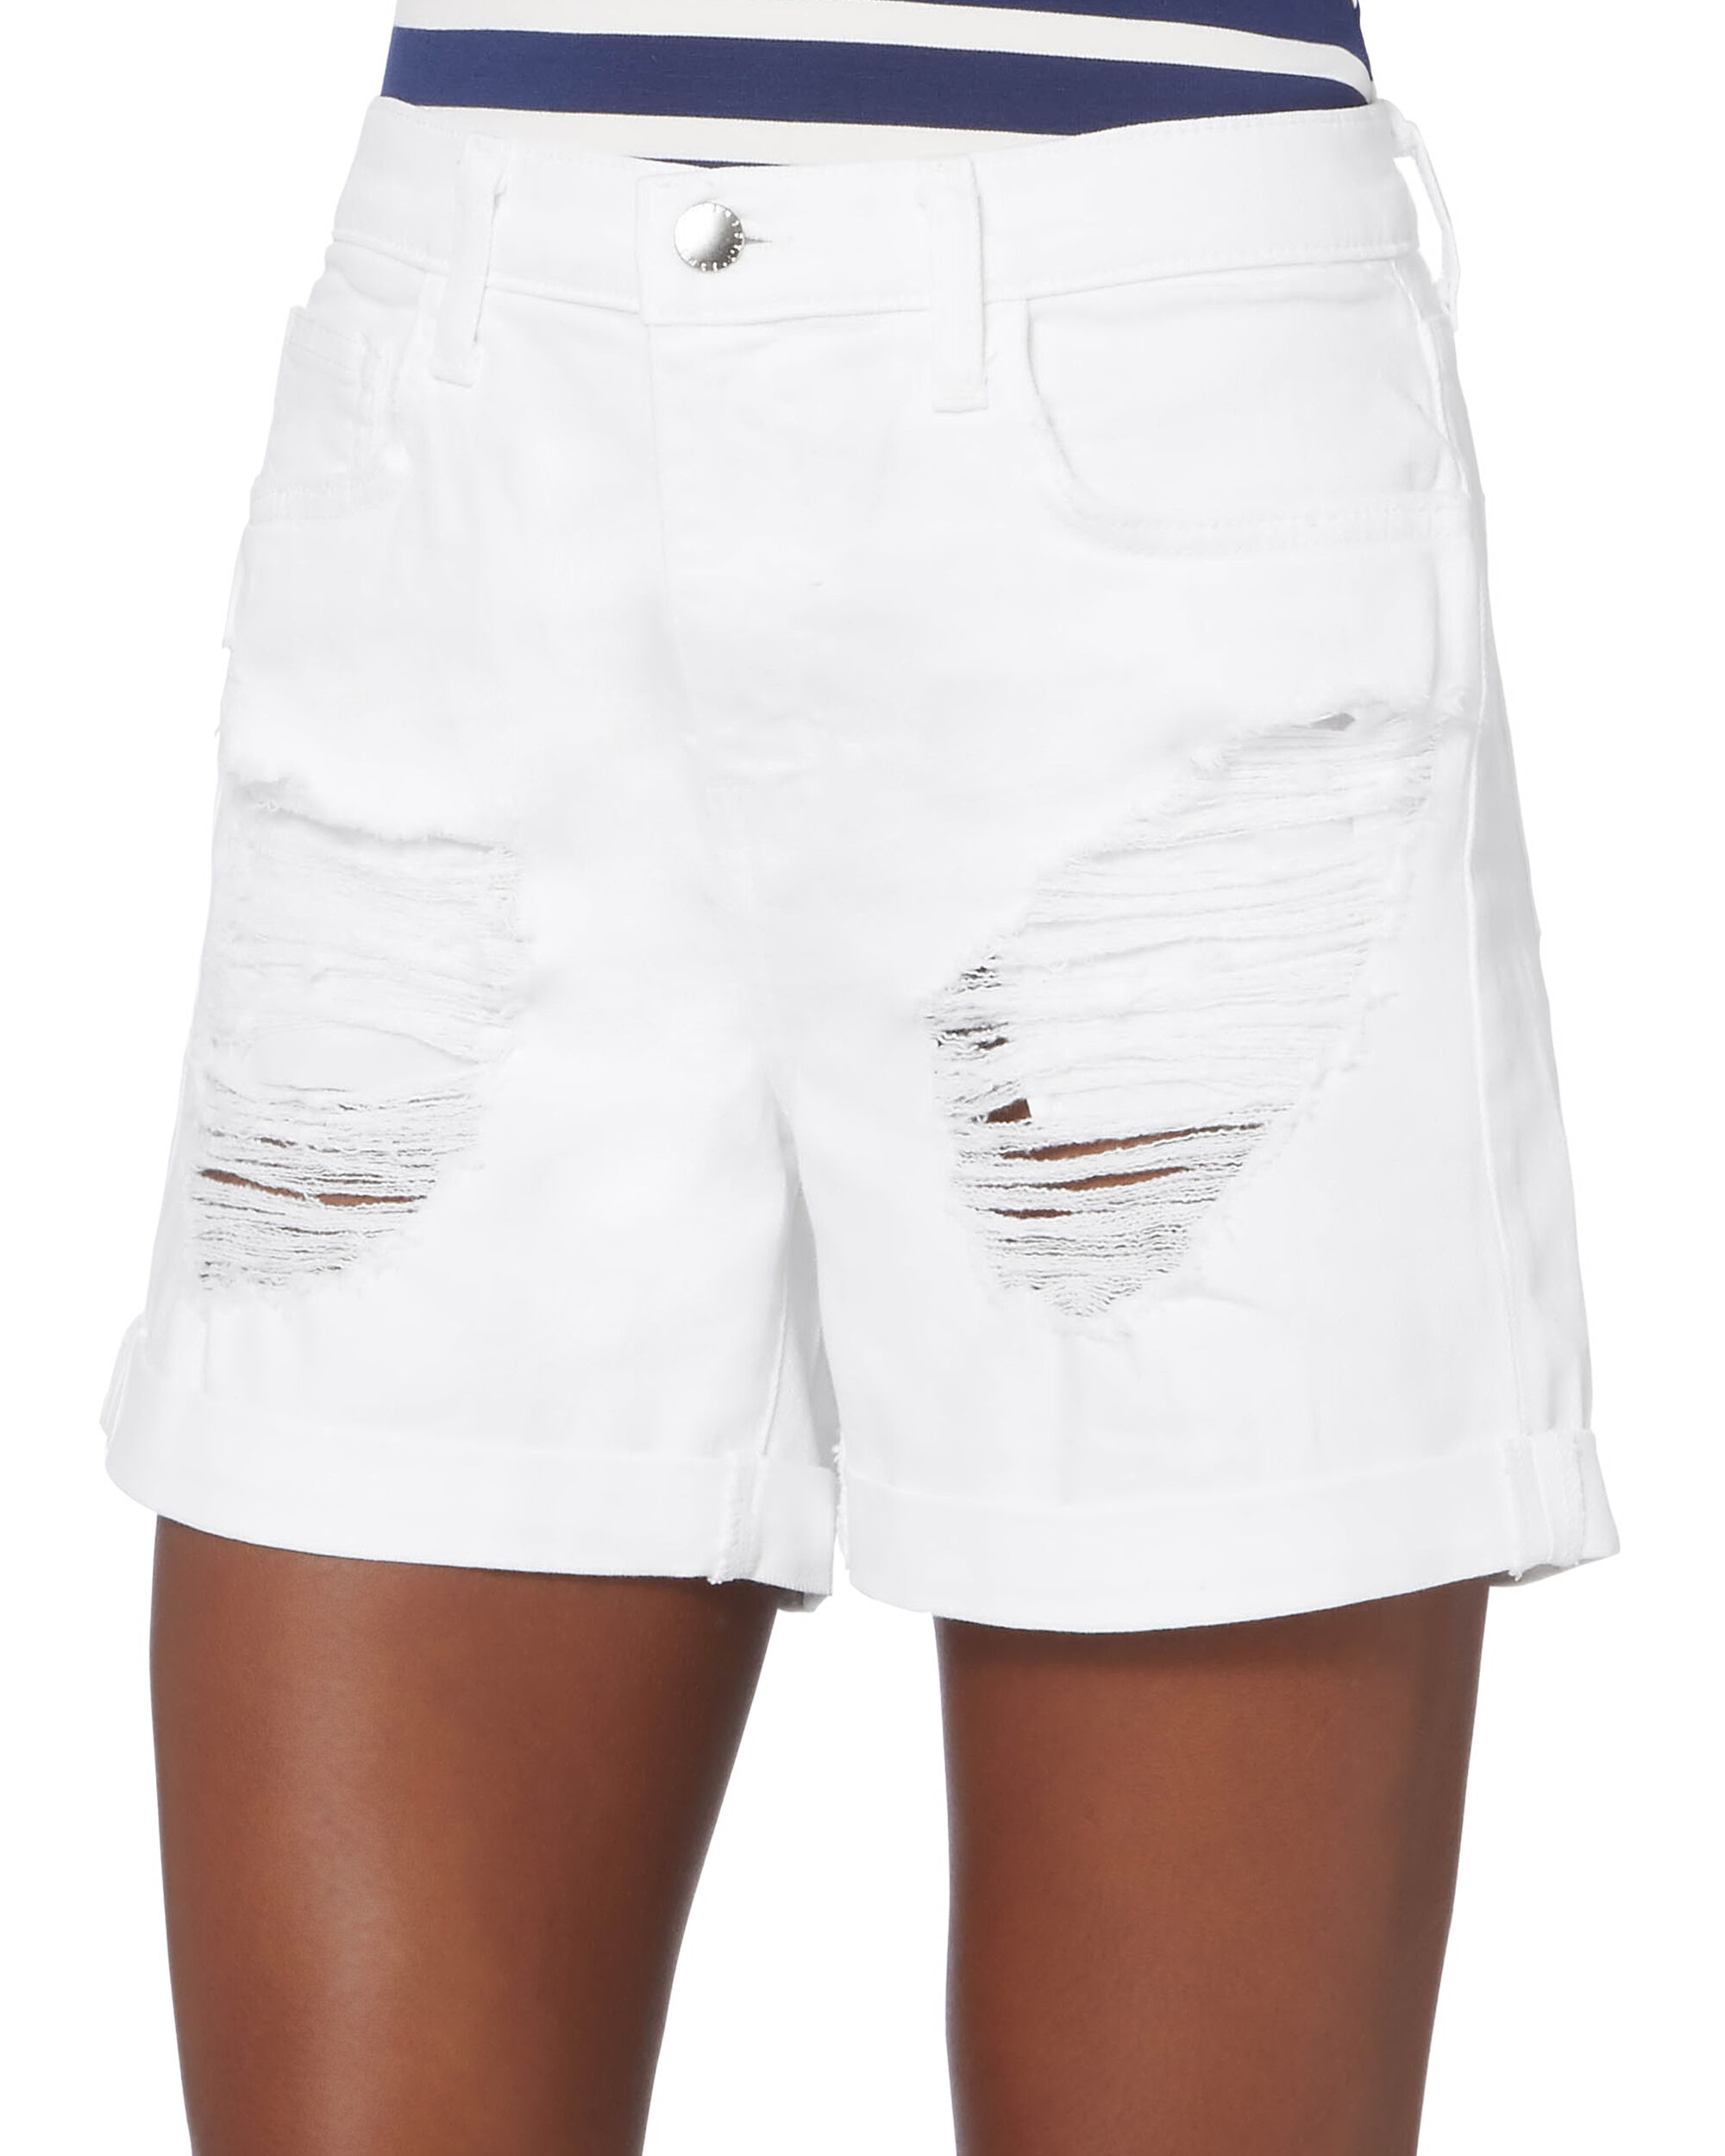 Balboa Double-Rolled Denim Shorts, WHITE, hi-res